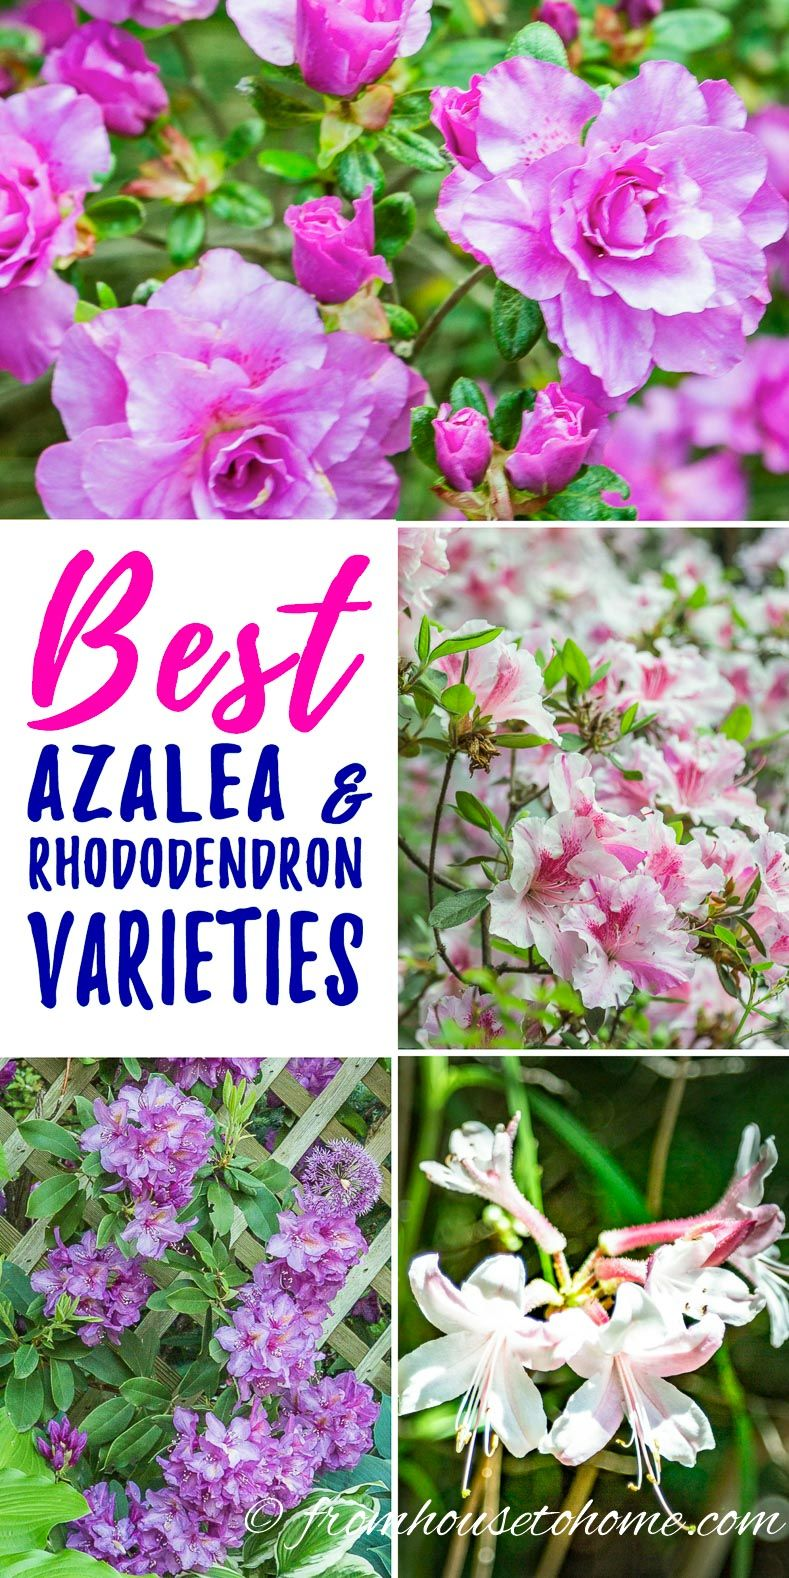 Rhododendron Varieties 7 Of The Best Azaleas And Rhododendrons For Your Garden Gardening From House To Home Shade Loving Shrubs Shade Perennials Rhododendron